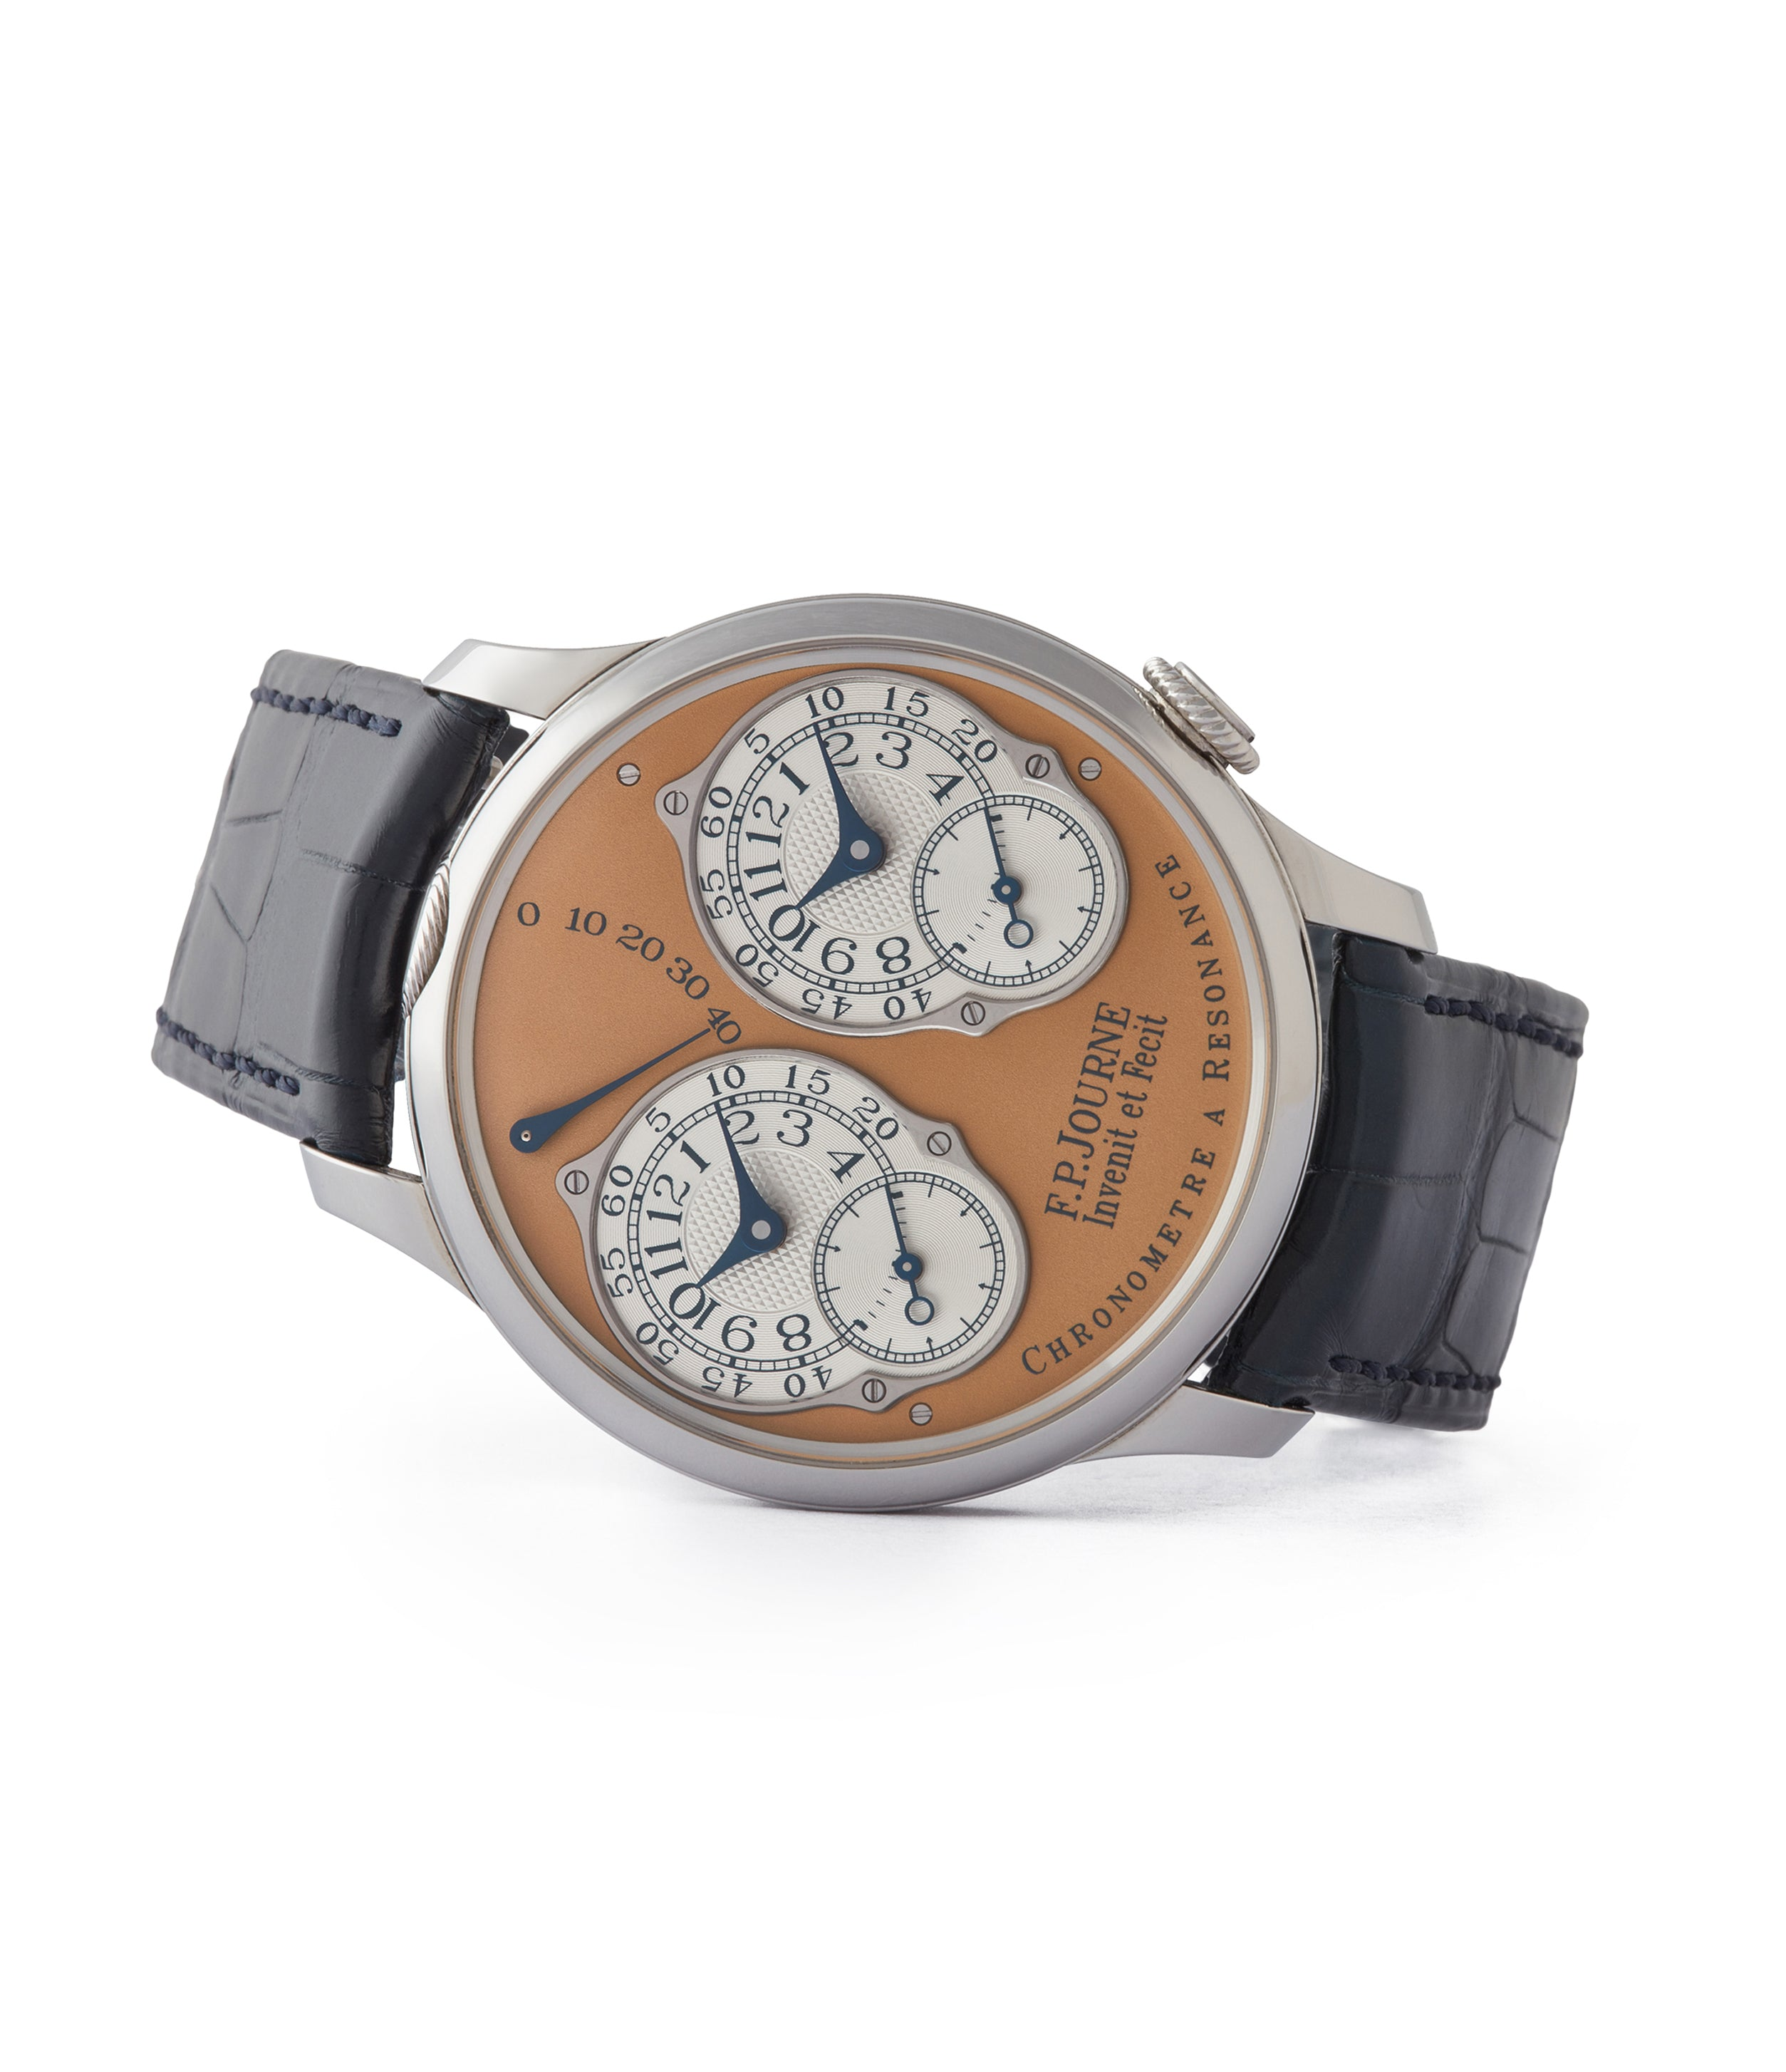 buy pre-owned F.P. Journe Limited Edition Chronomètre Résonance steel 38mm dress watch for sale online at A Collected Man London UK specialist of independent watchmakers